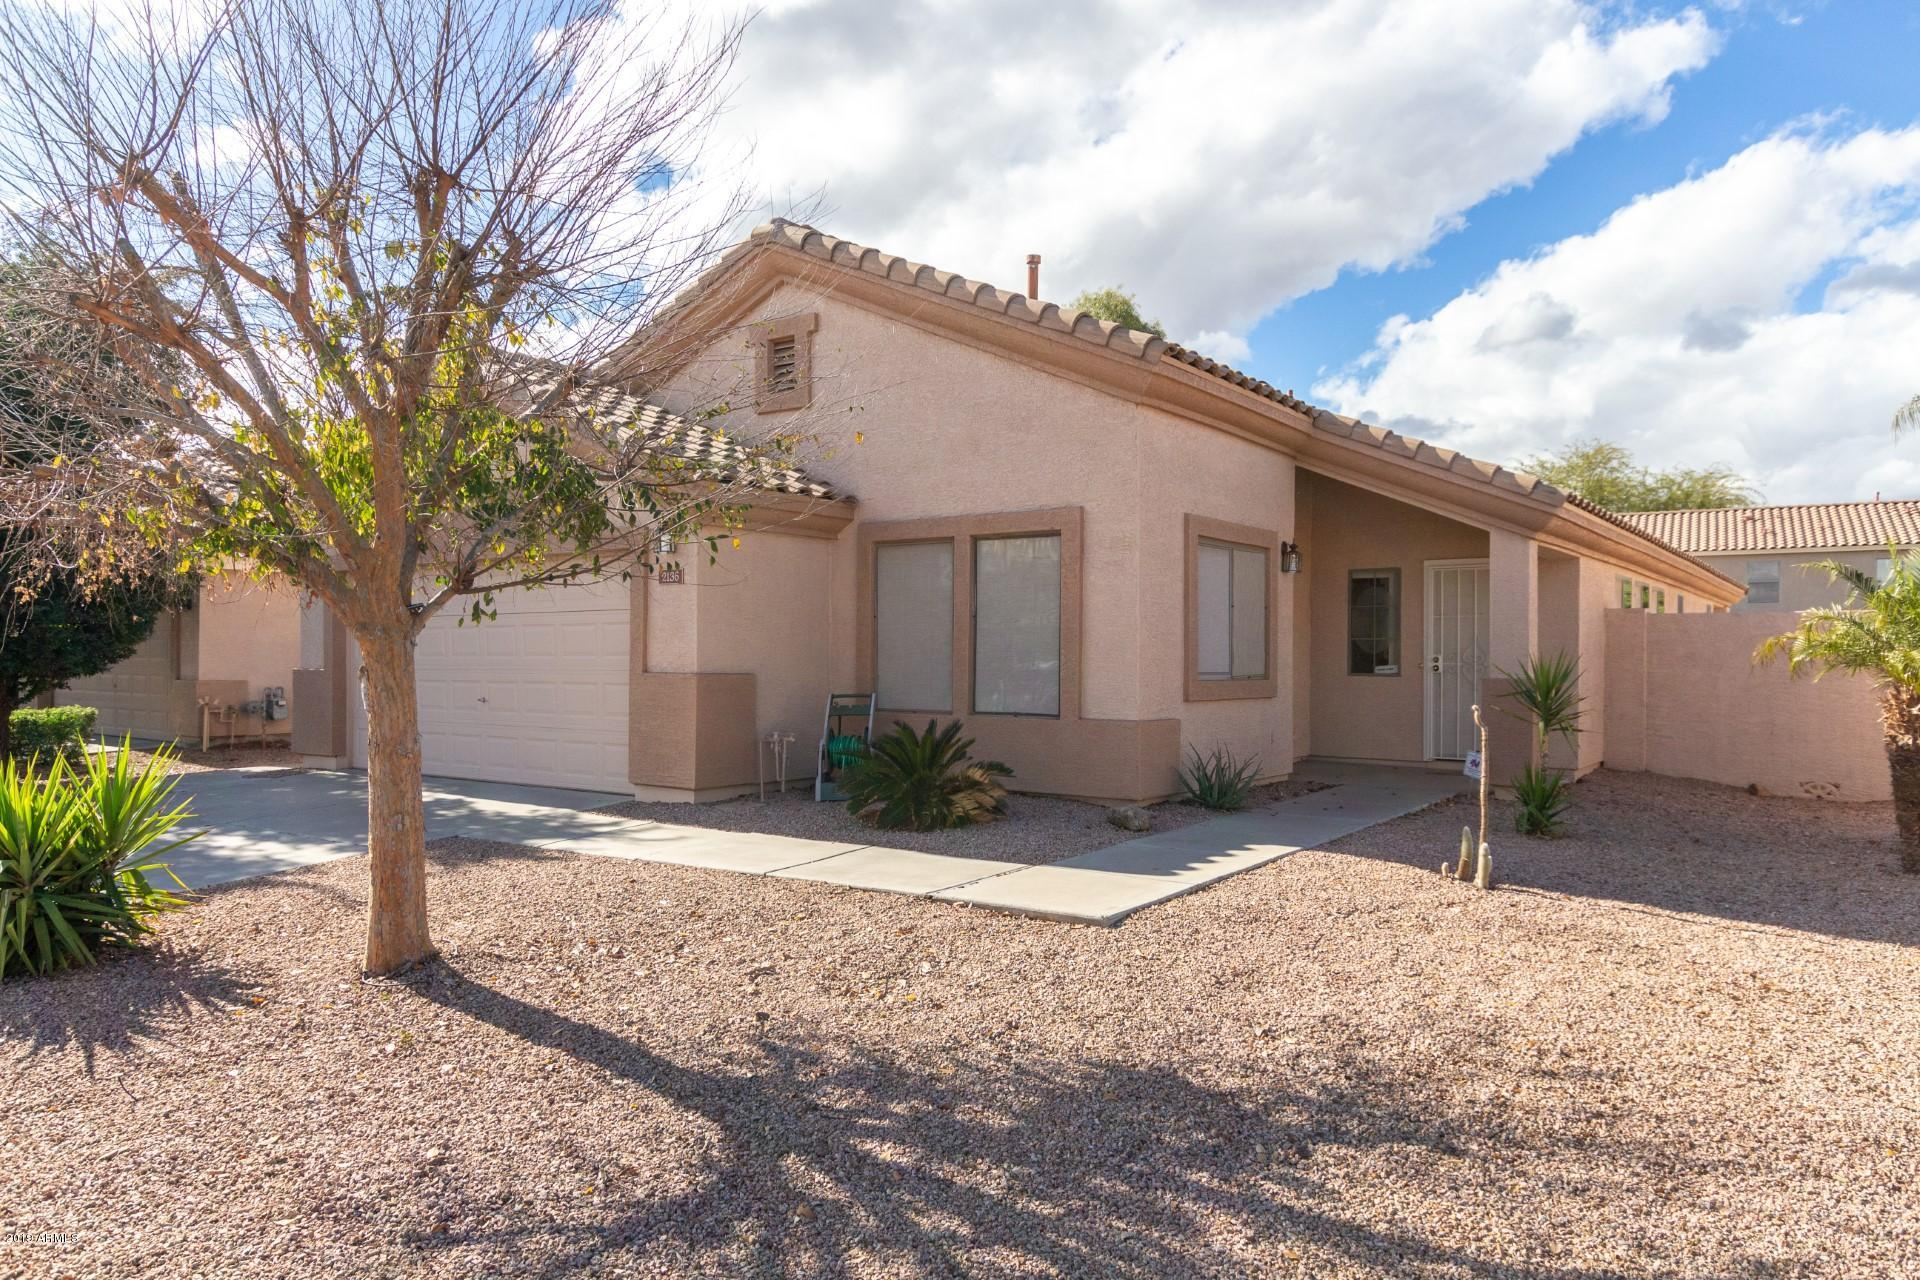 Photo of 2136 S ALICIA --, Mesa, AZ 85209